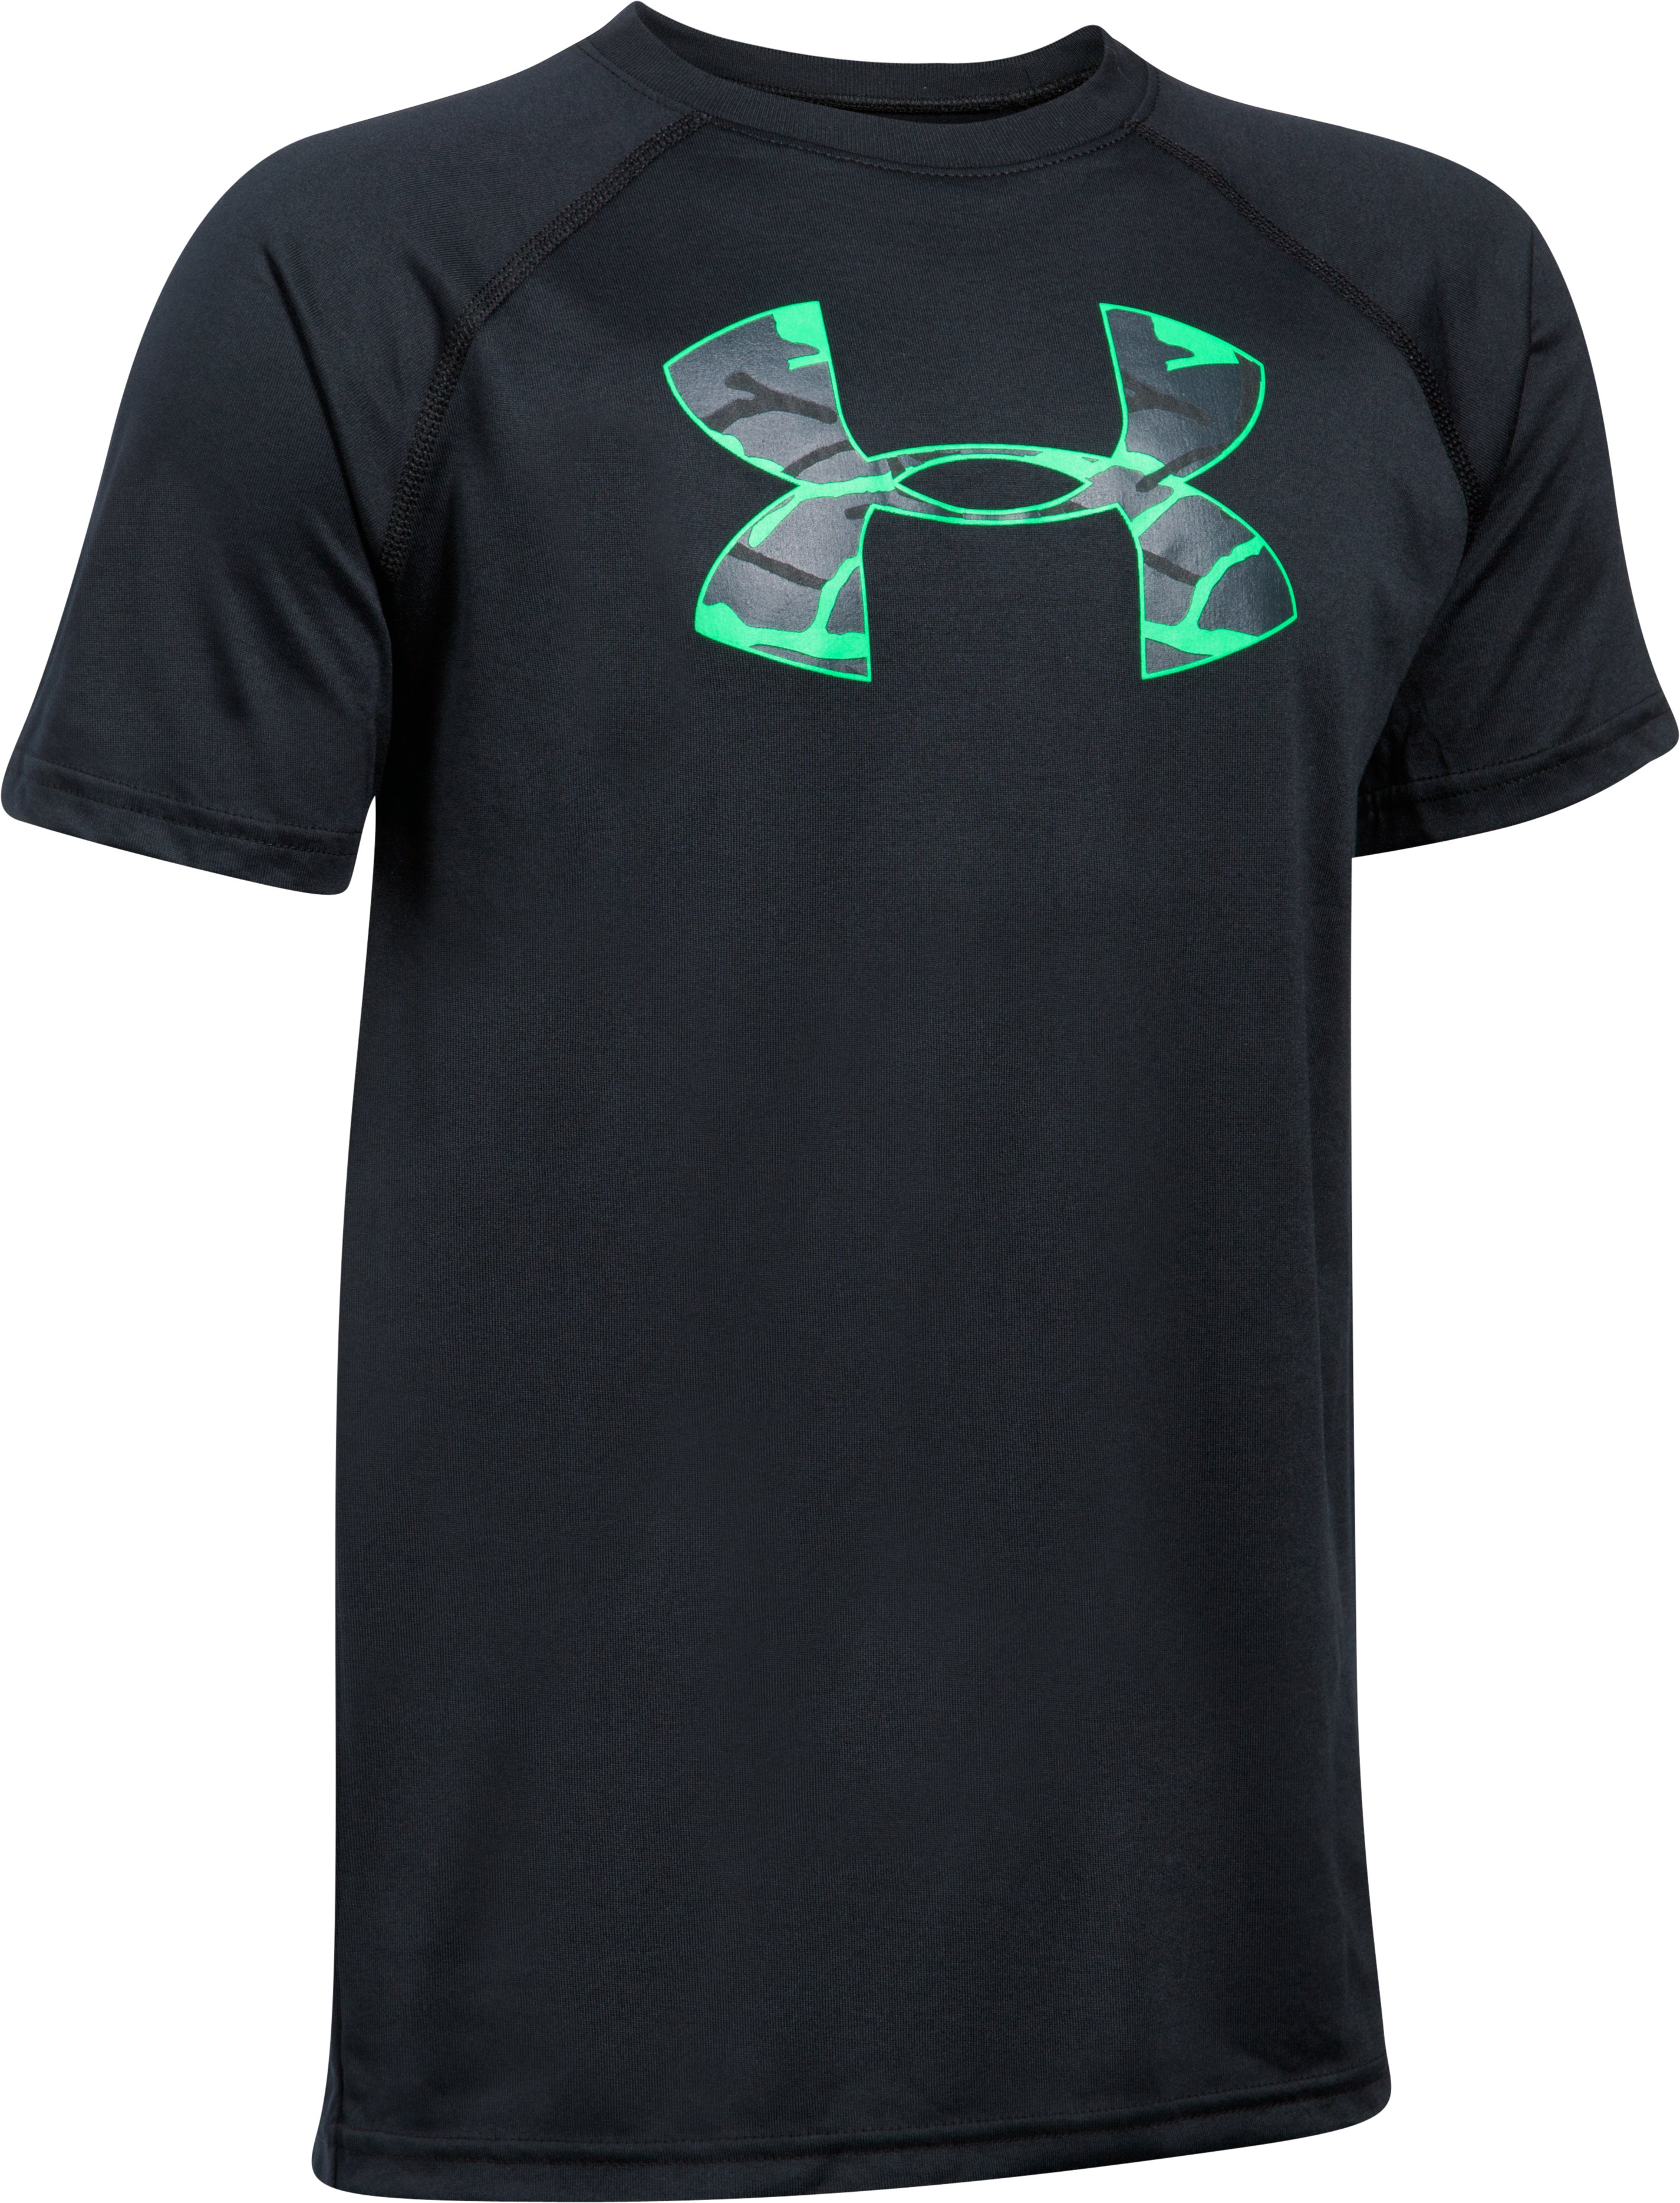 Boys' UA Tech Big Logo T-Shirt, Black , undefined